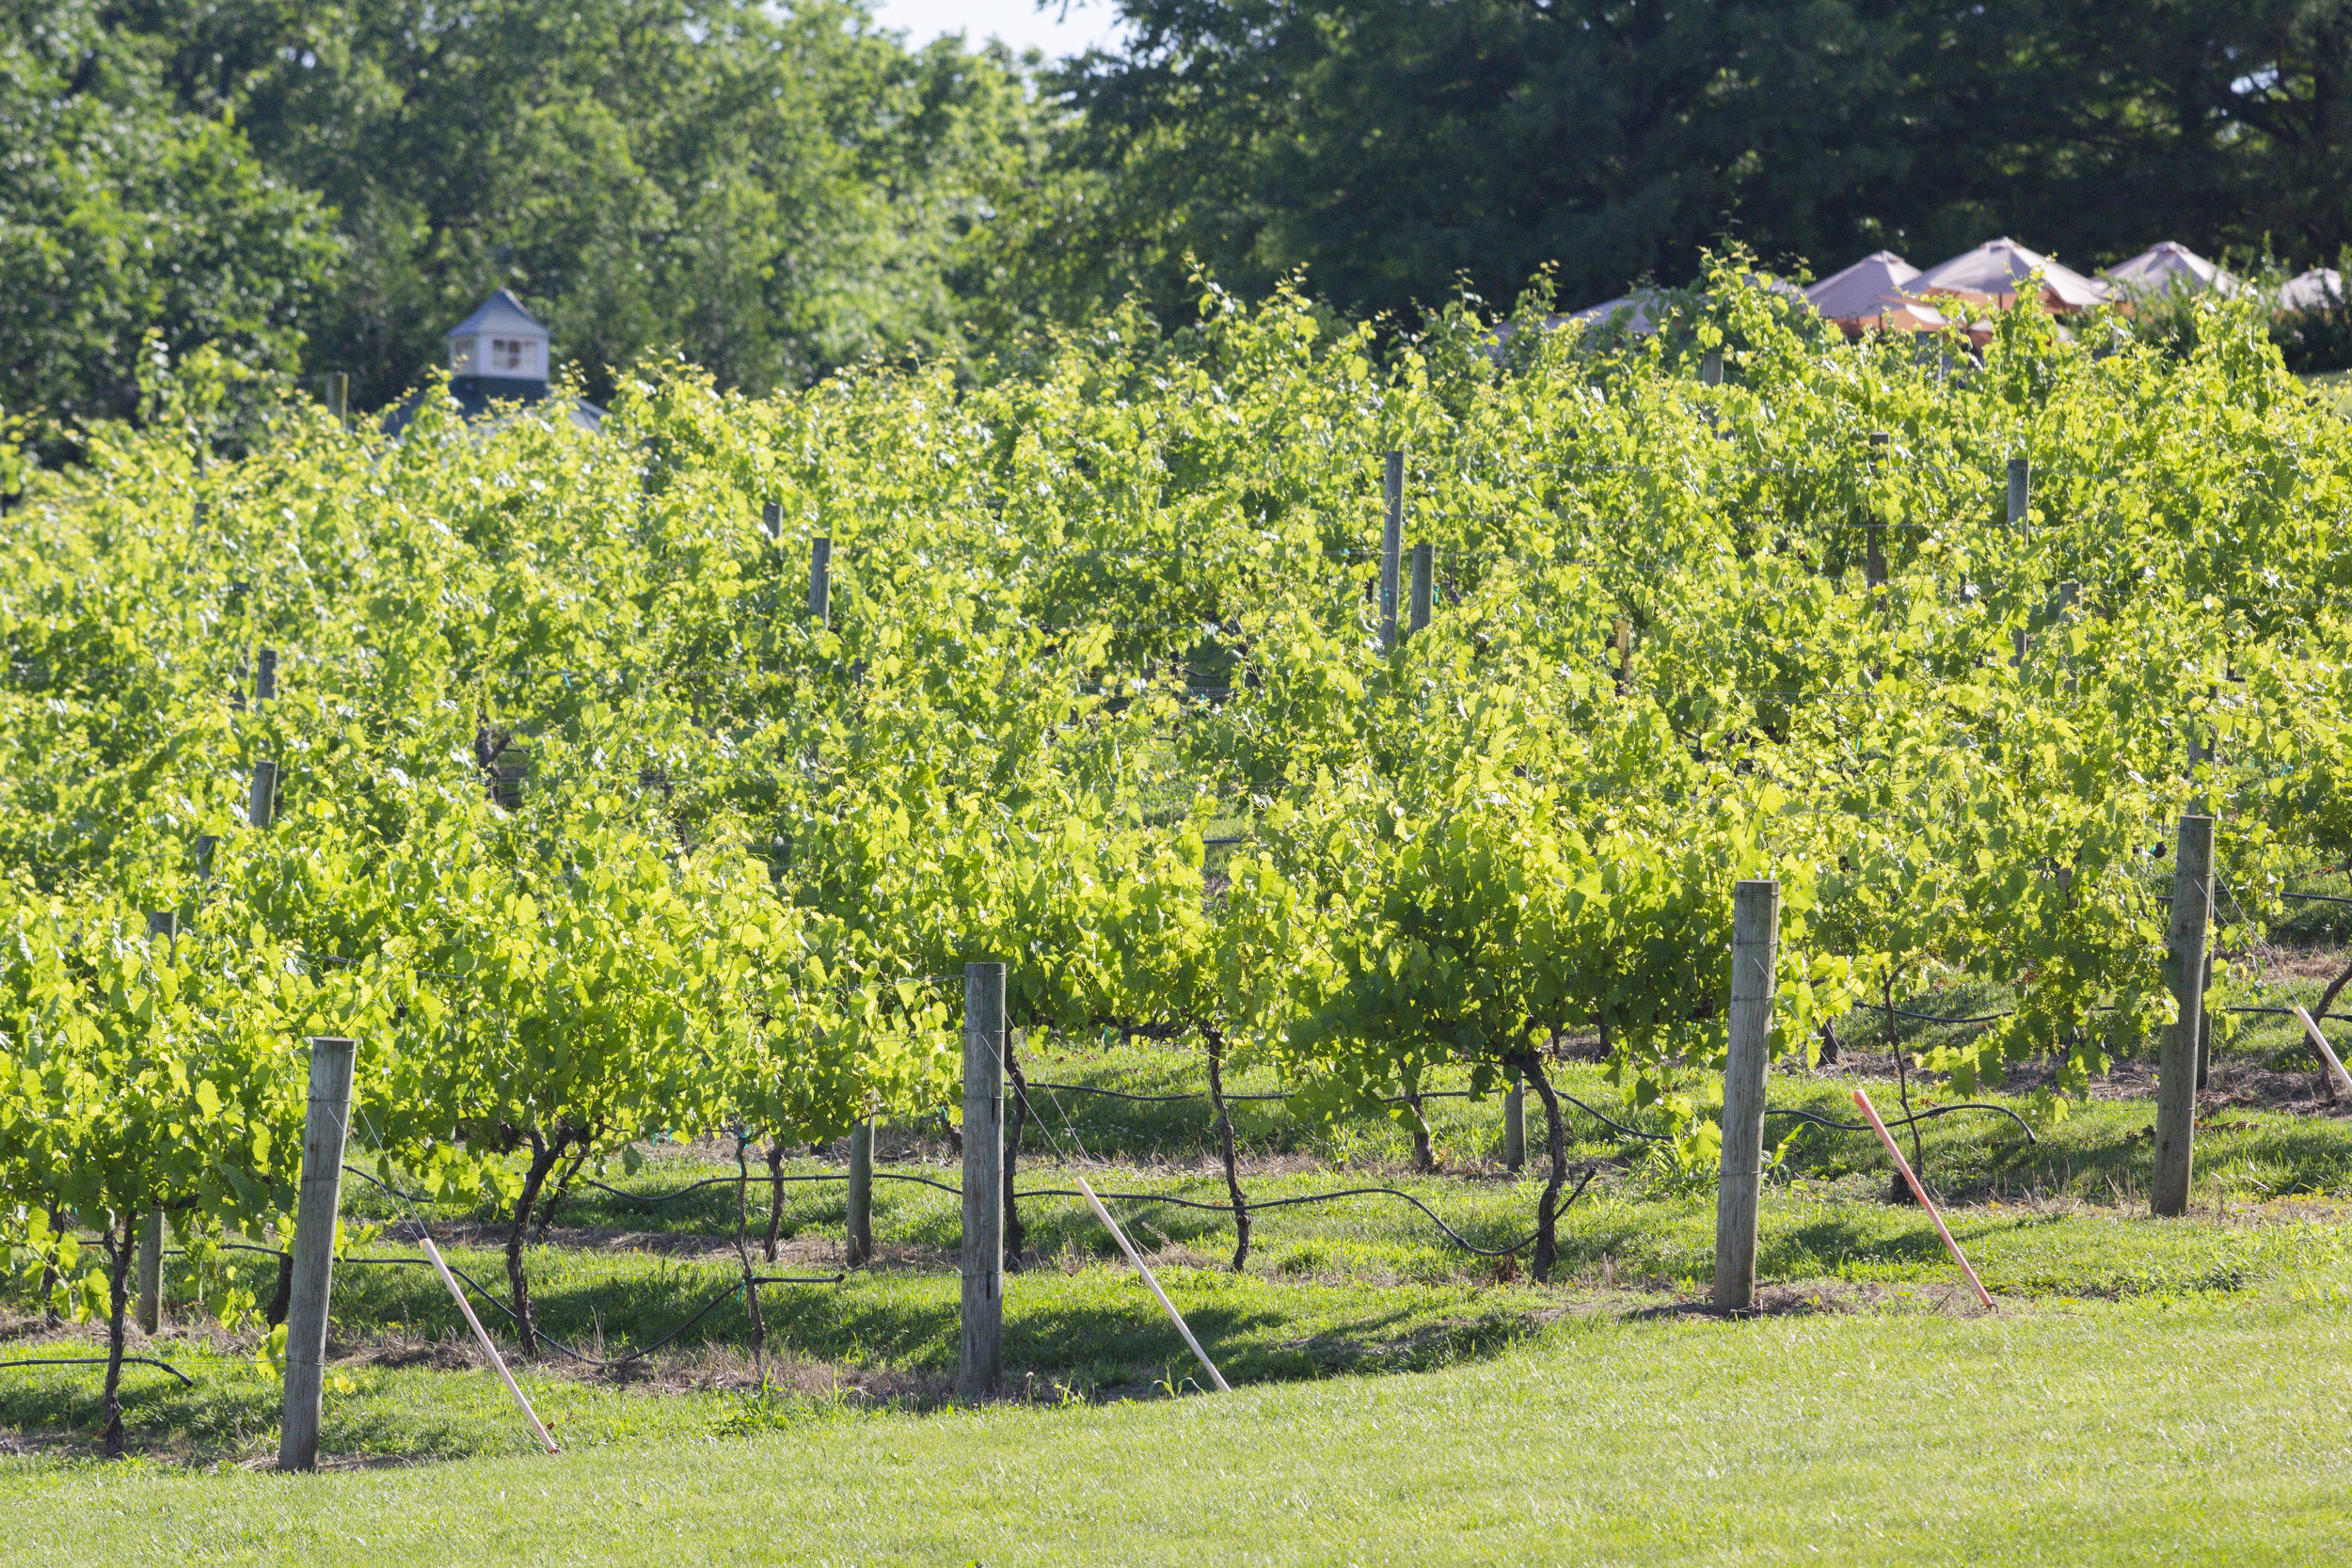 RolwesImages_Defiance Ridge Vineyard0638.JPG